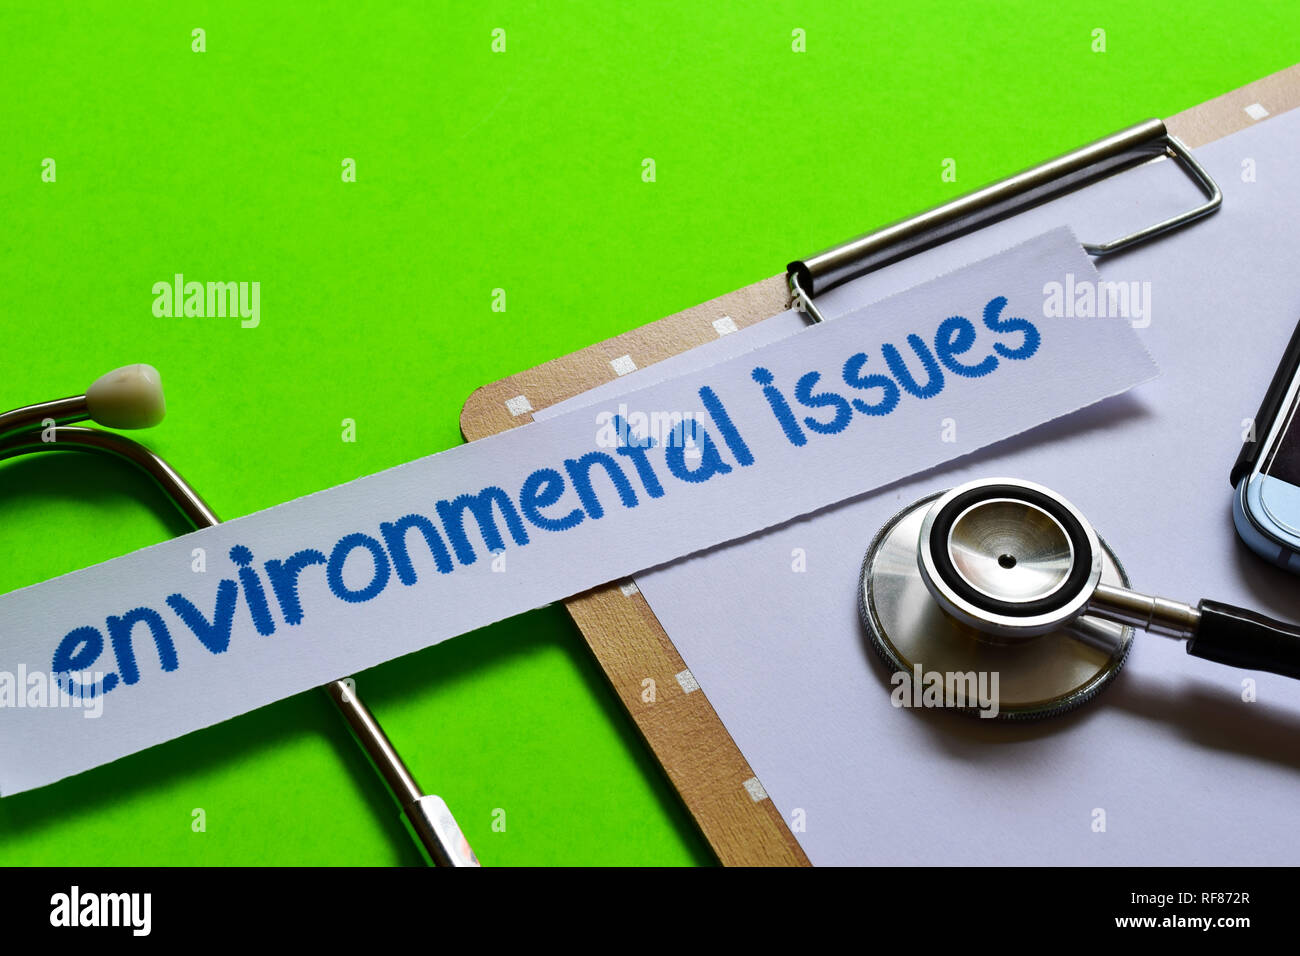 Environmental issues on healthcare concept inspiration with green background - Stock Image